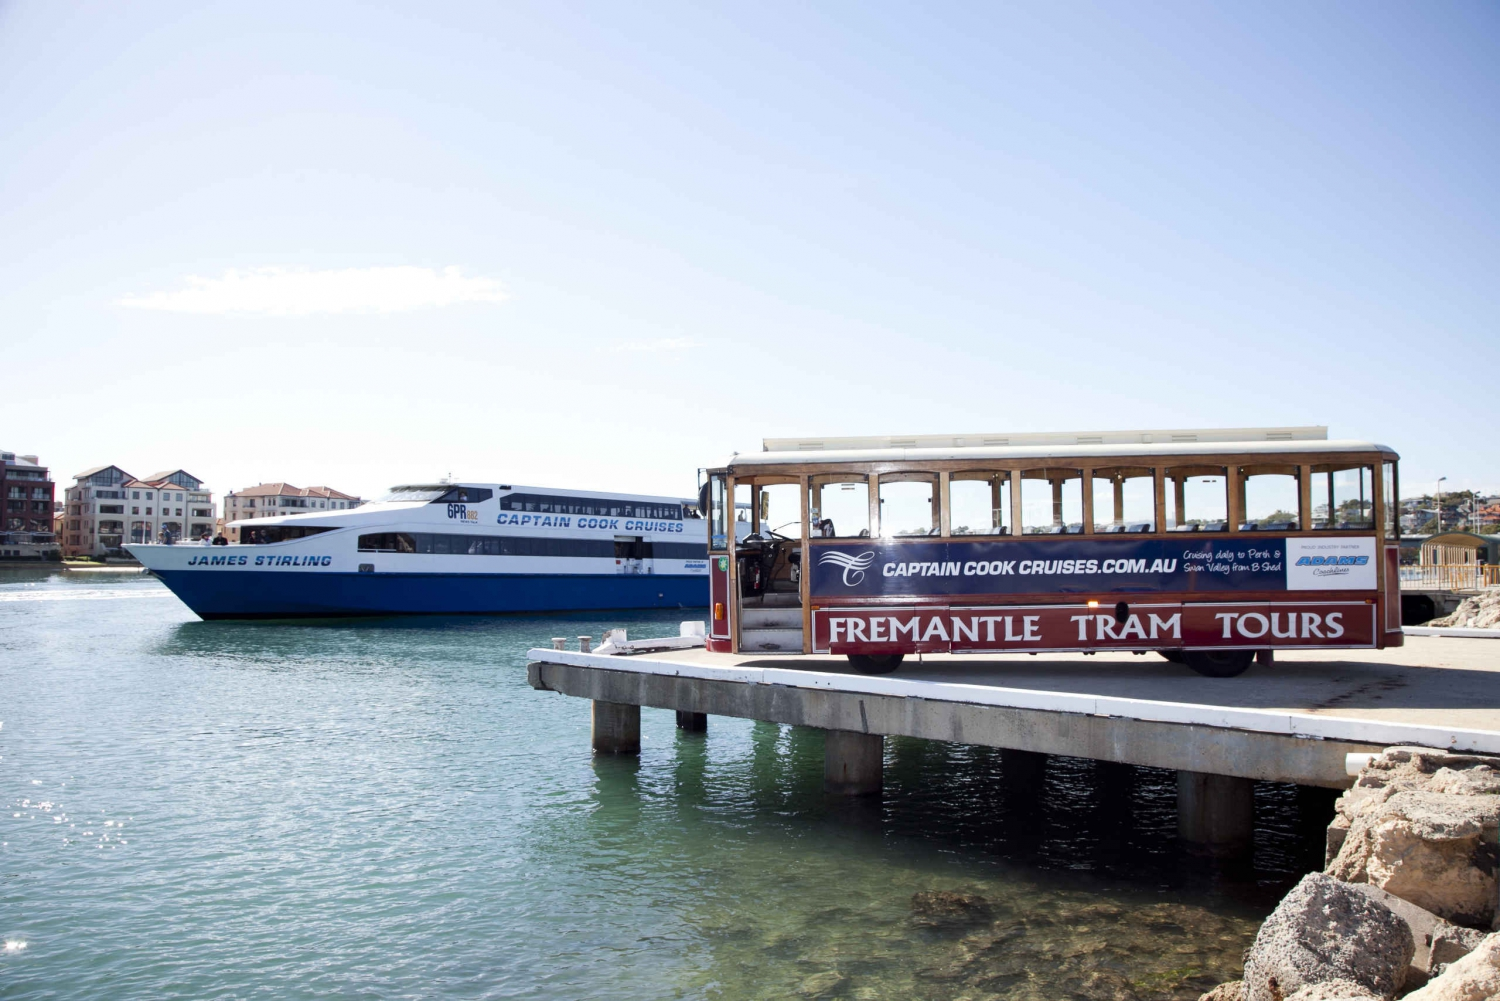 Perth Lunch Cruise with Fremantle Sightseeing Tram Tour